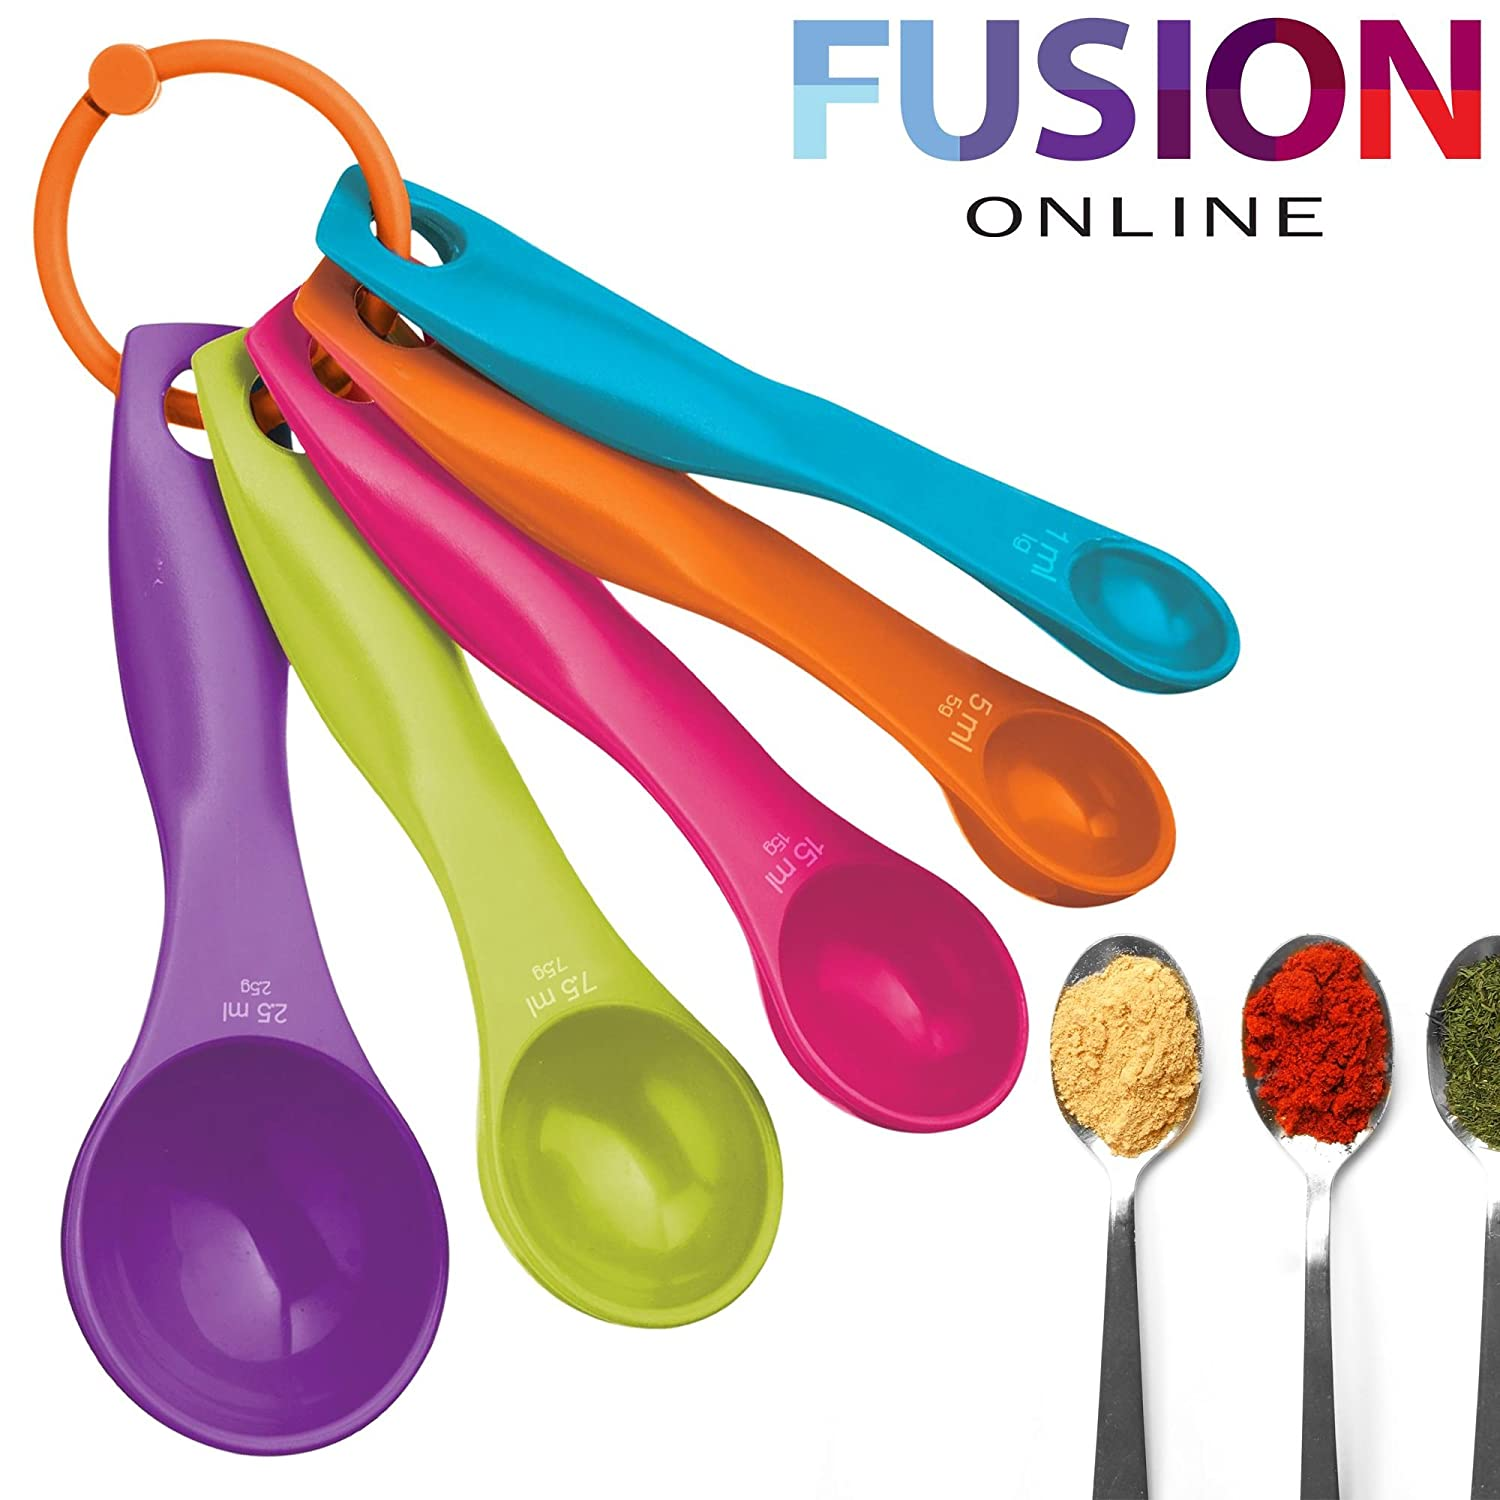 5 PCS PLASTIC MEASURING SPOONS SET COLOURFUL KITCHEN UTENSIL COOKING BAKING TOOL Evelyn Living